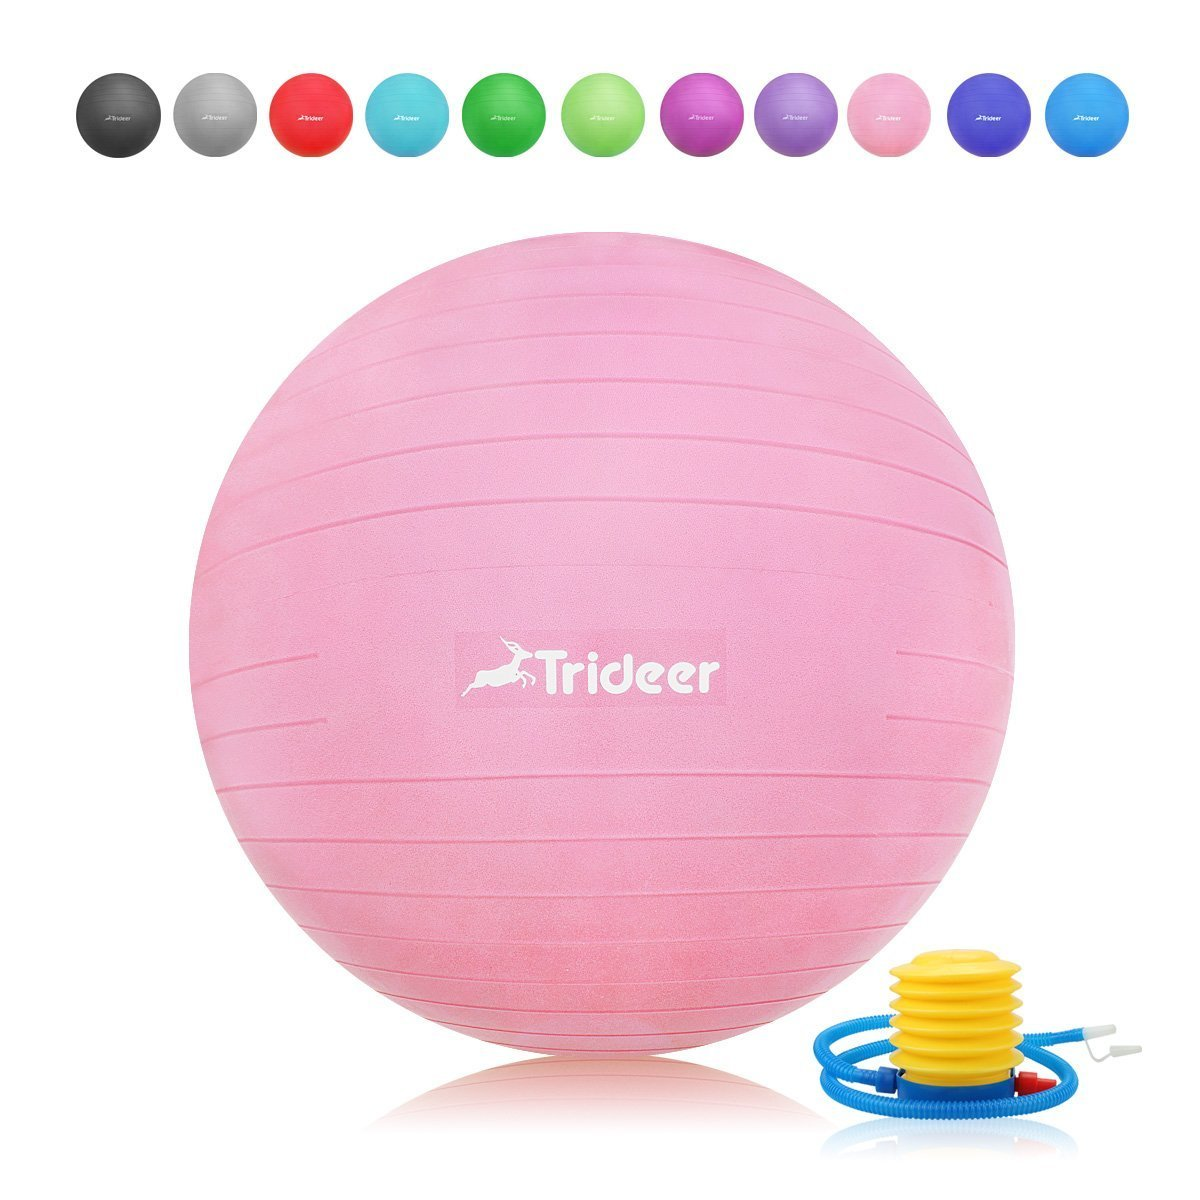 Trideer Exercise Ball, Yoga Ball, Birthing Ball with Quick Pump, Anti-Burst & Extra Thick, Heavy Duty Ball Chair, Stability Ball Supports 2200lbs (Office&Home) (Pink, M (48-55cm))